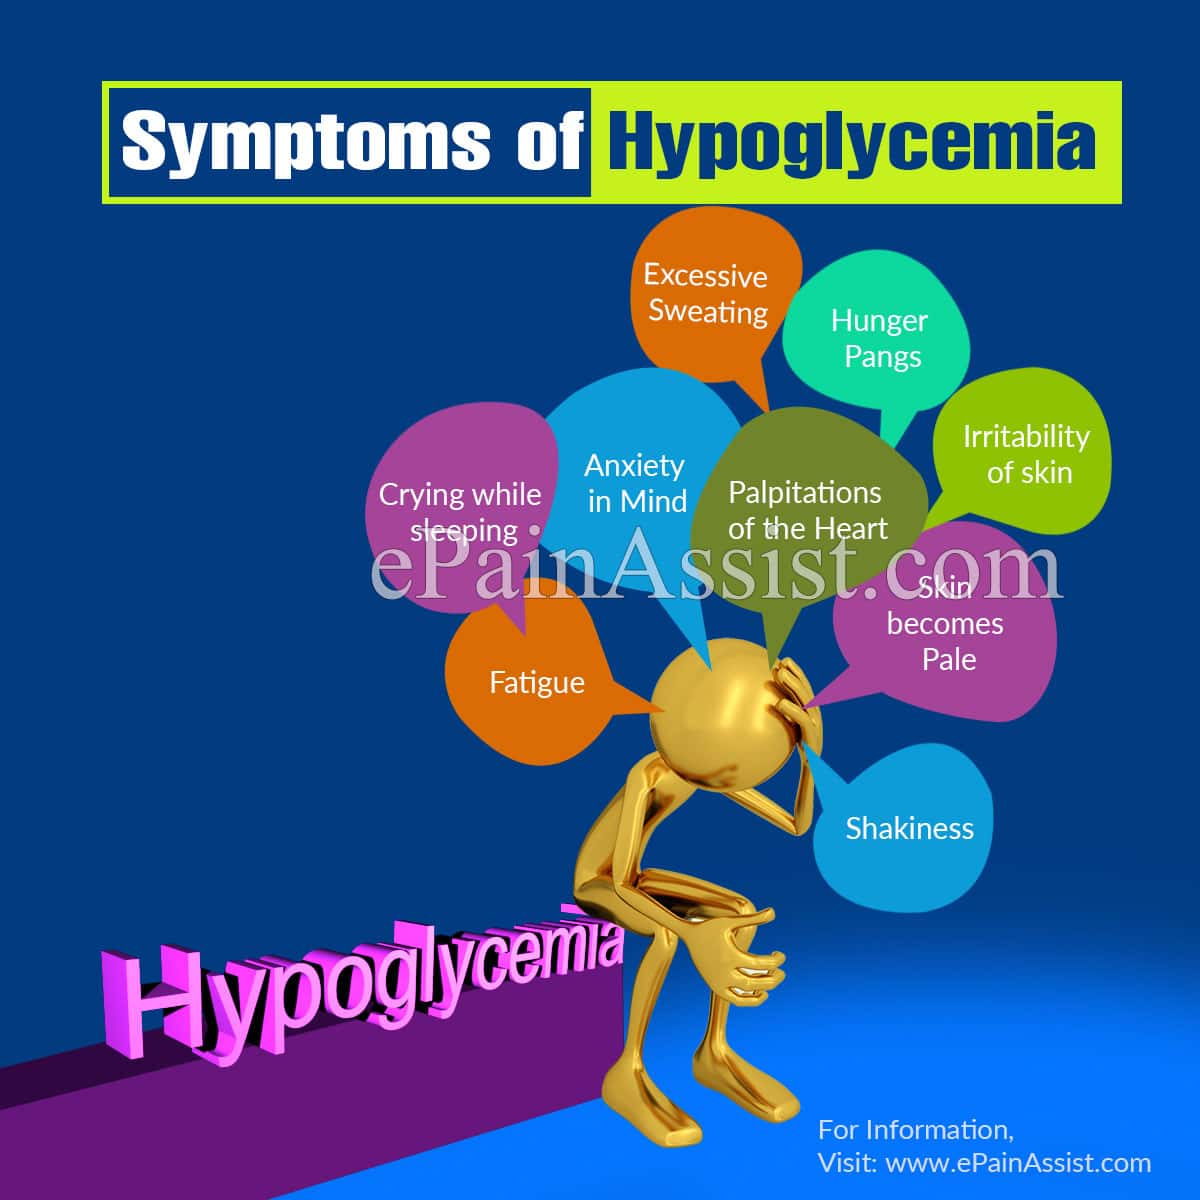 Signs and Symptoms of Low Blood Glucose or Hypoglycemia